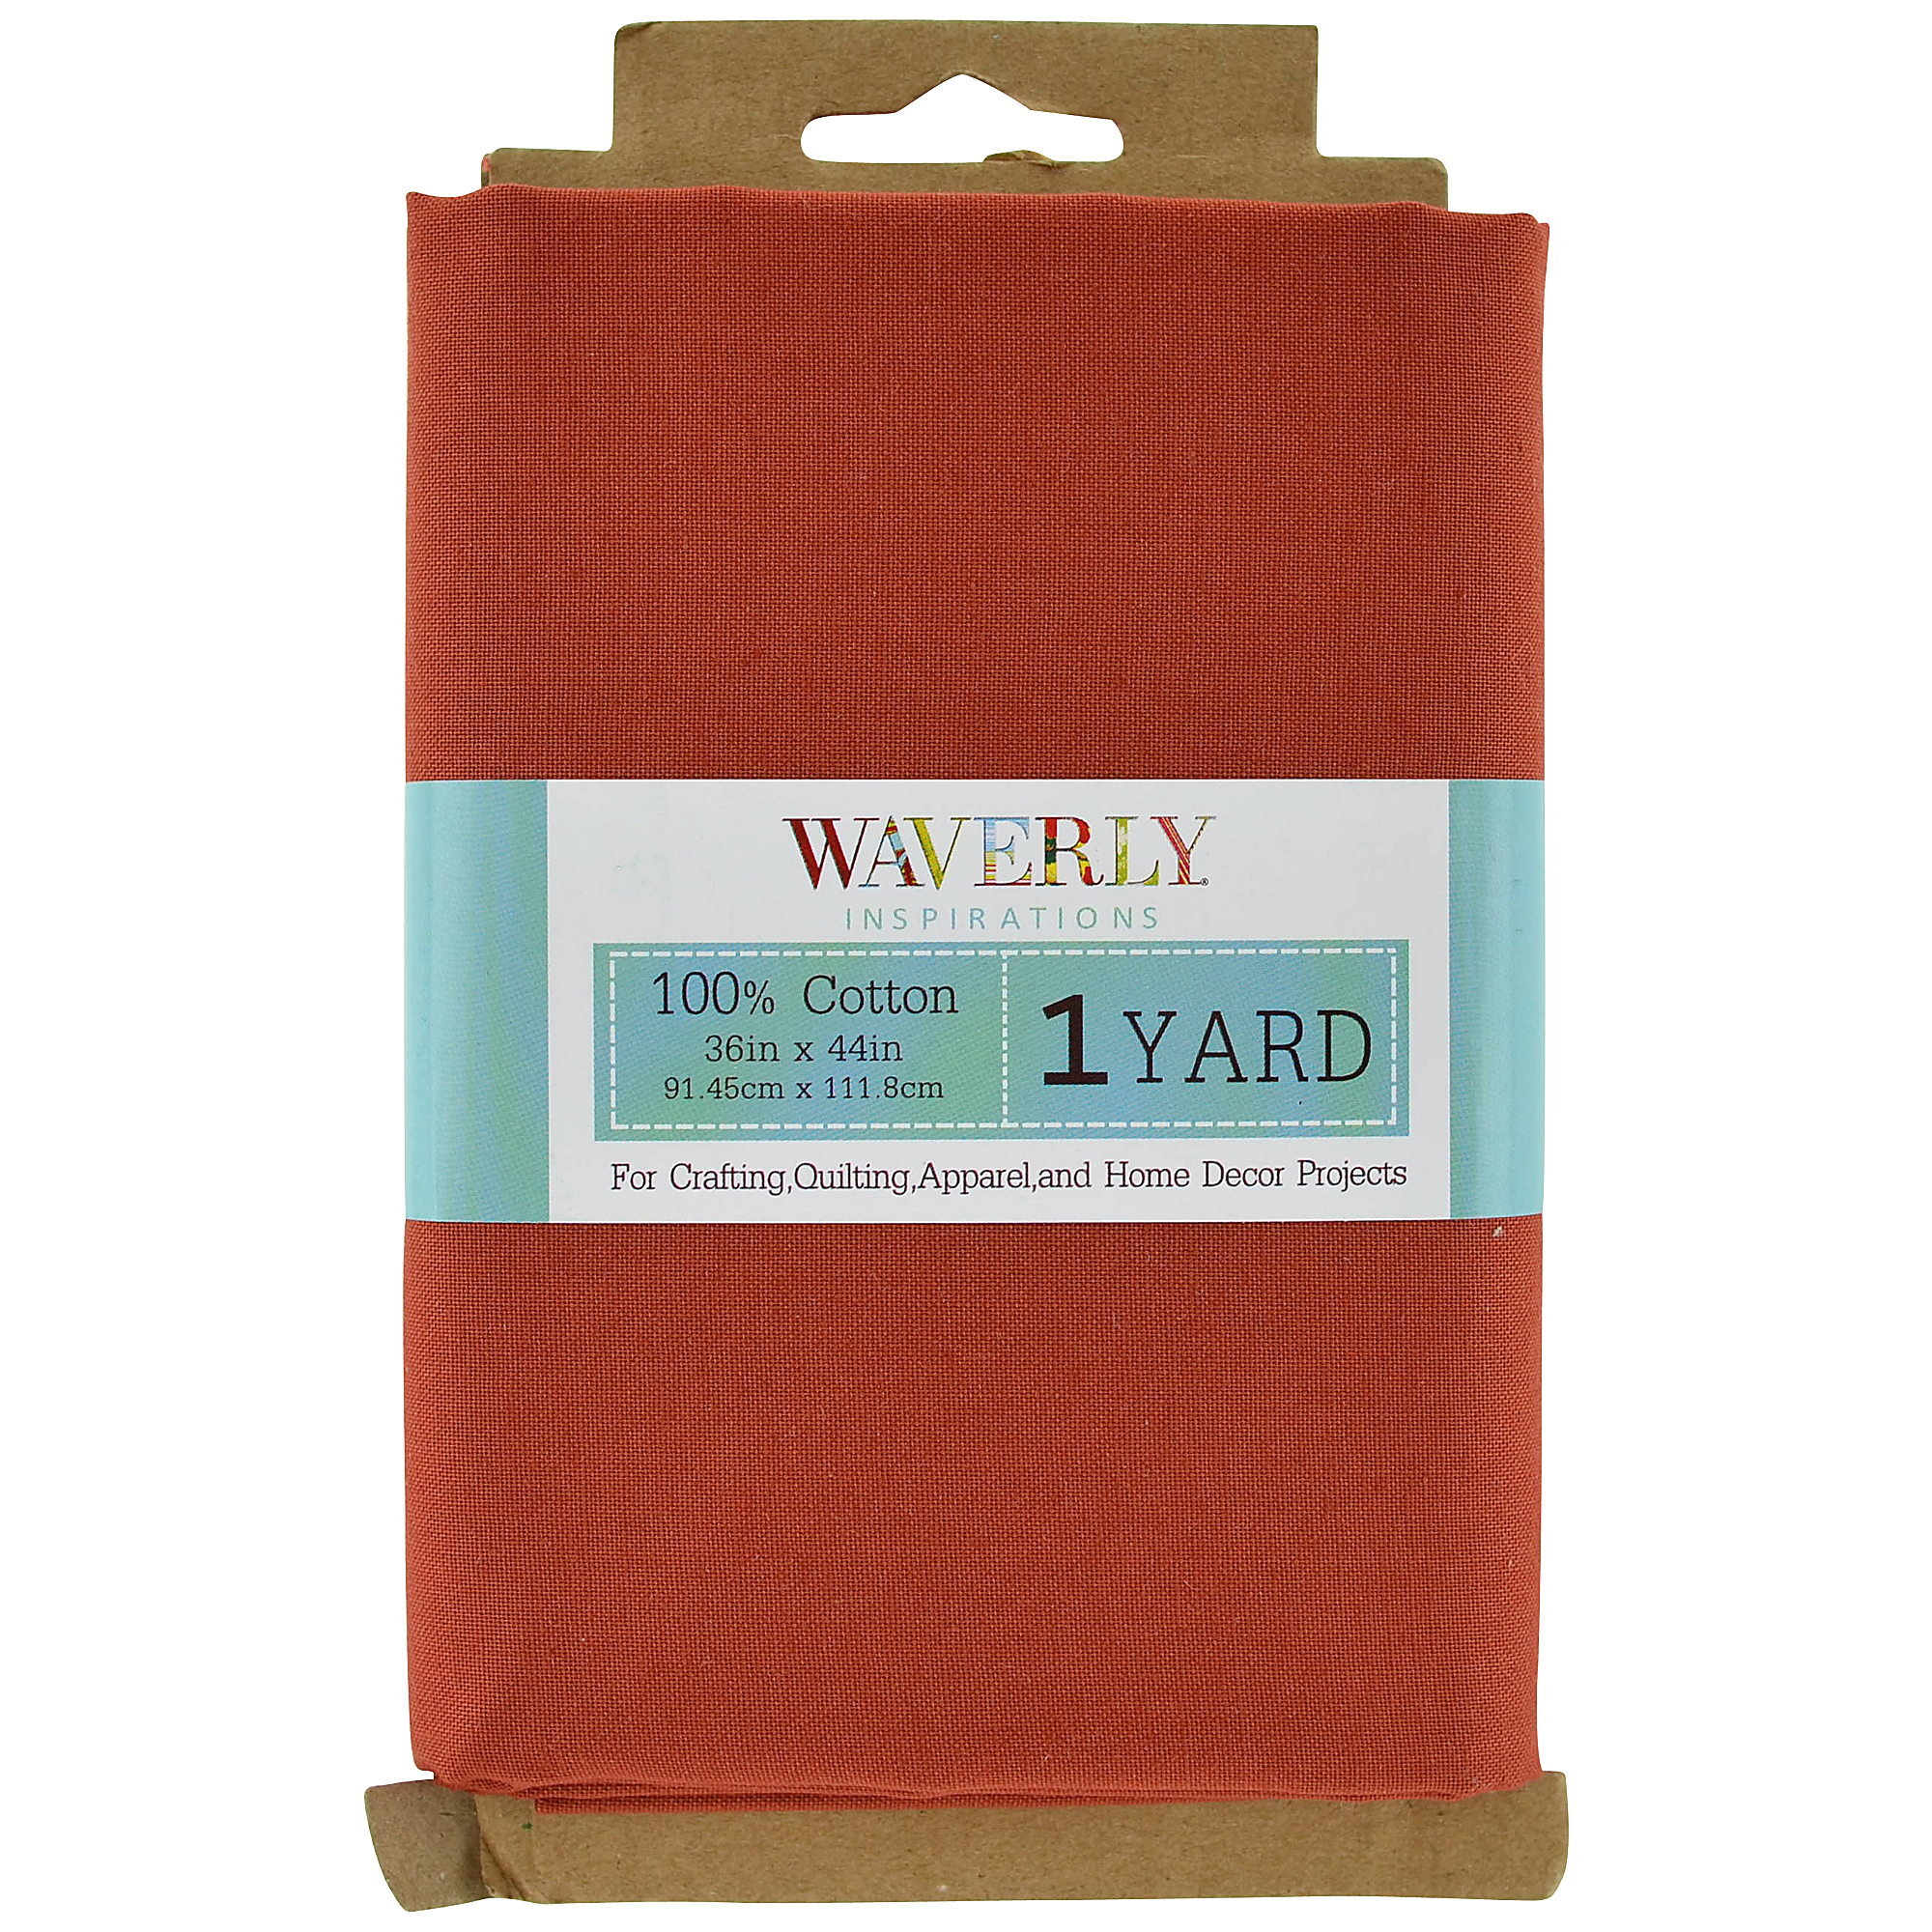 Waverly Inspirations Cotton Solid Spice Fabric, 1 Yd.